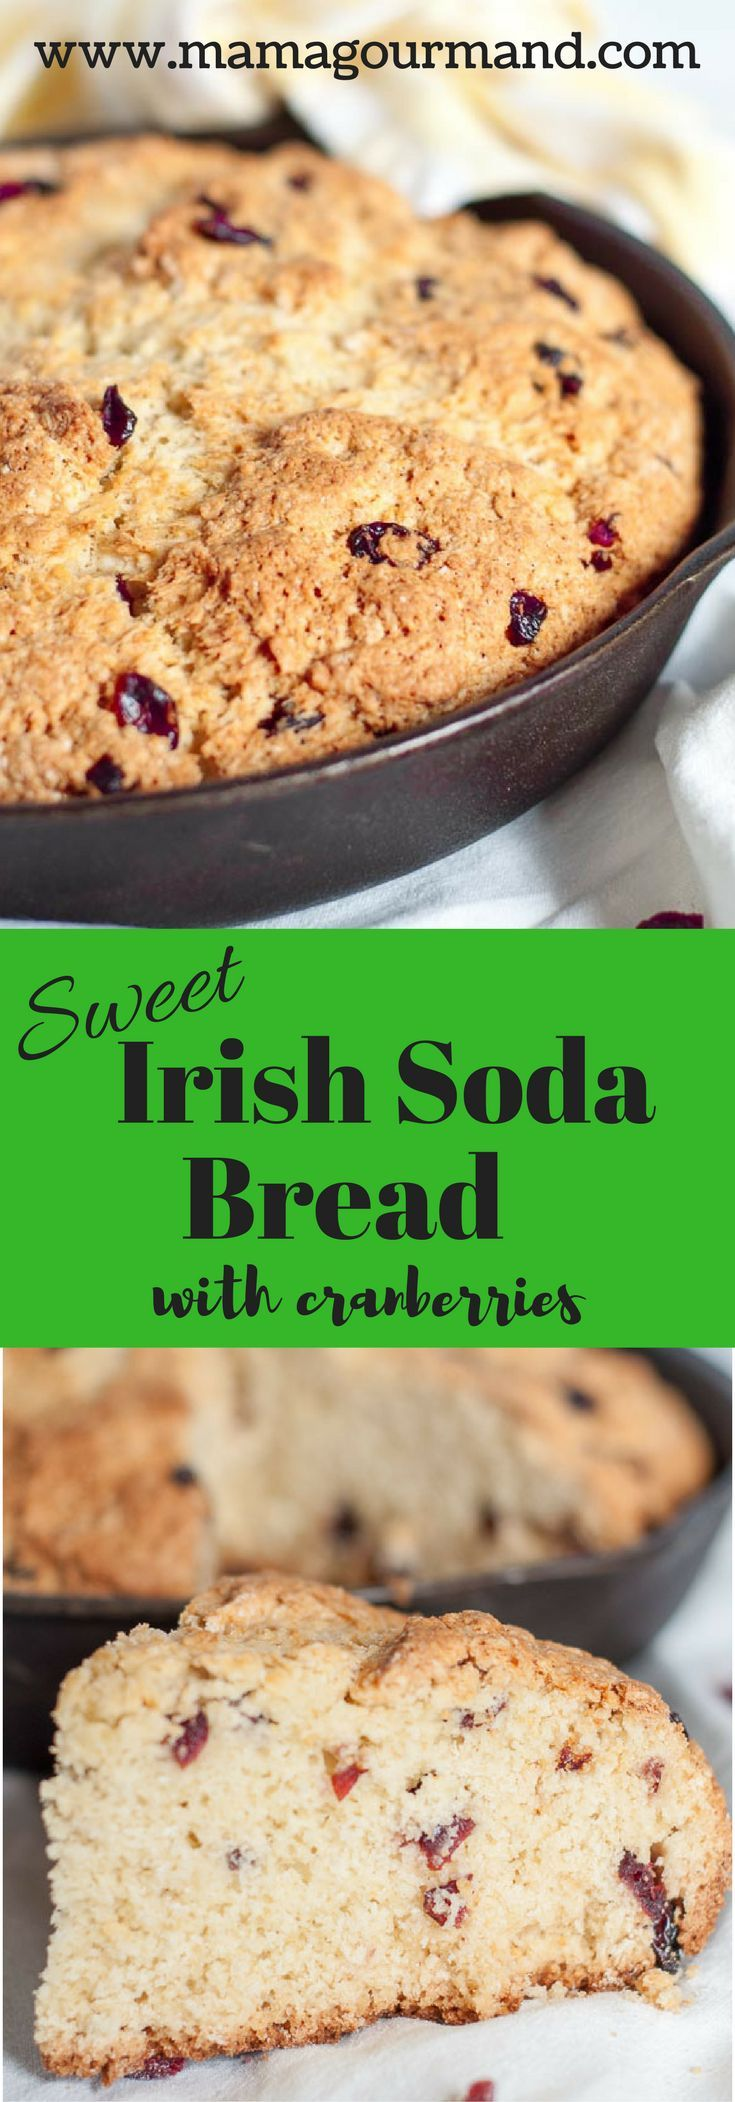 Best Ever Irish Soda Bread recipe is an absolute perfected version! It has a golden, crunchy, sweet crust with a moist, chewy interior, and tangy cranberries. http://www.mamagourmand.com